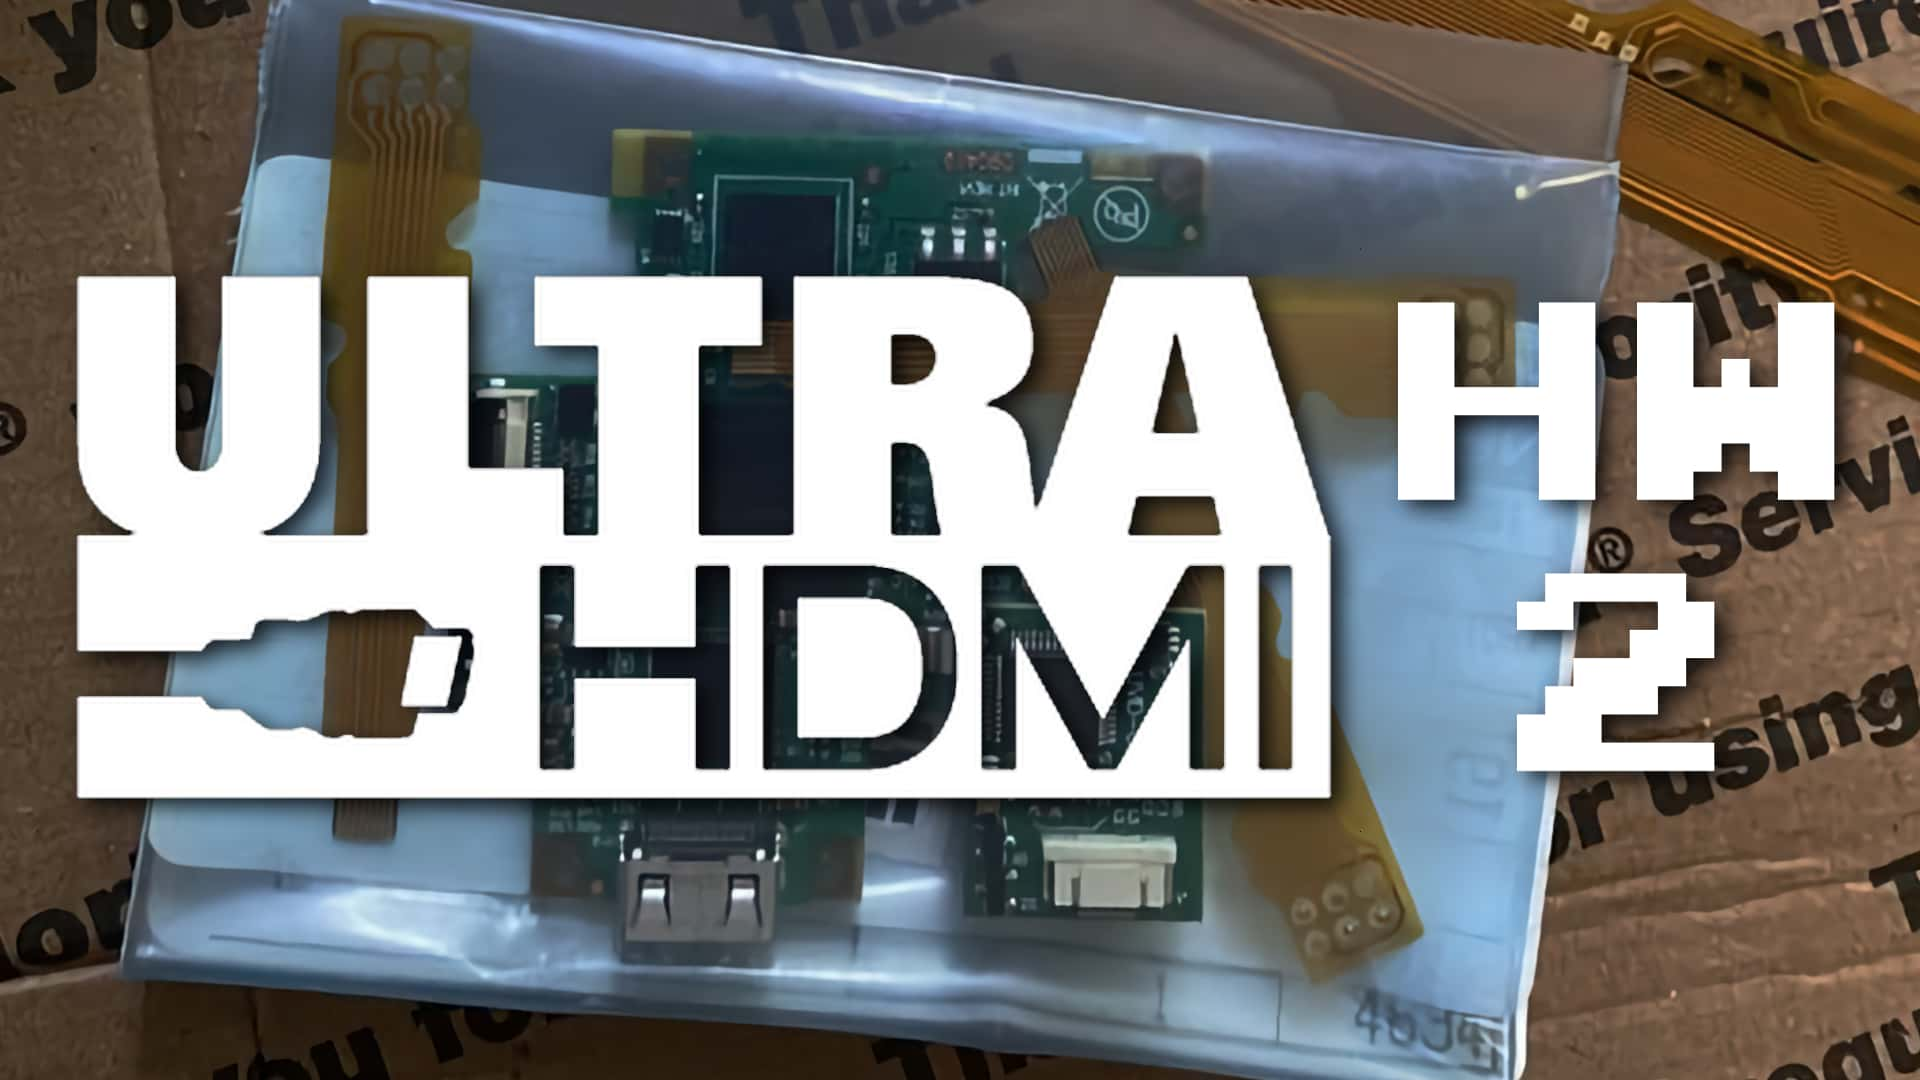 UltraHDMI Mod Updated With Analog Video Options [Updated]